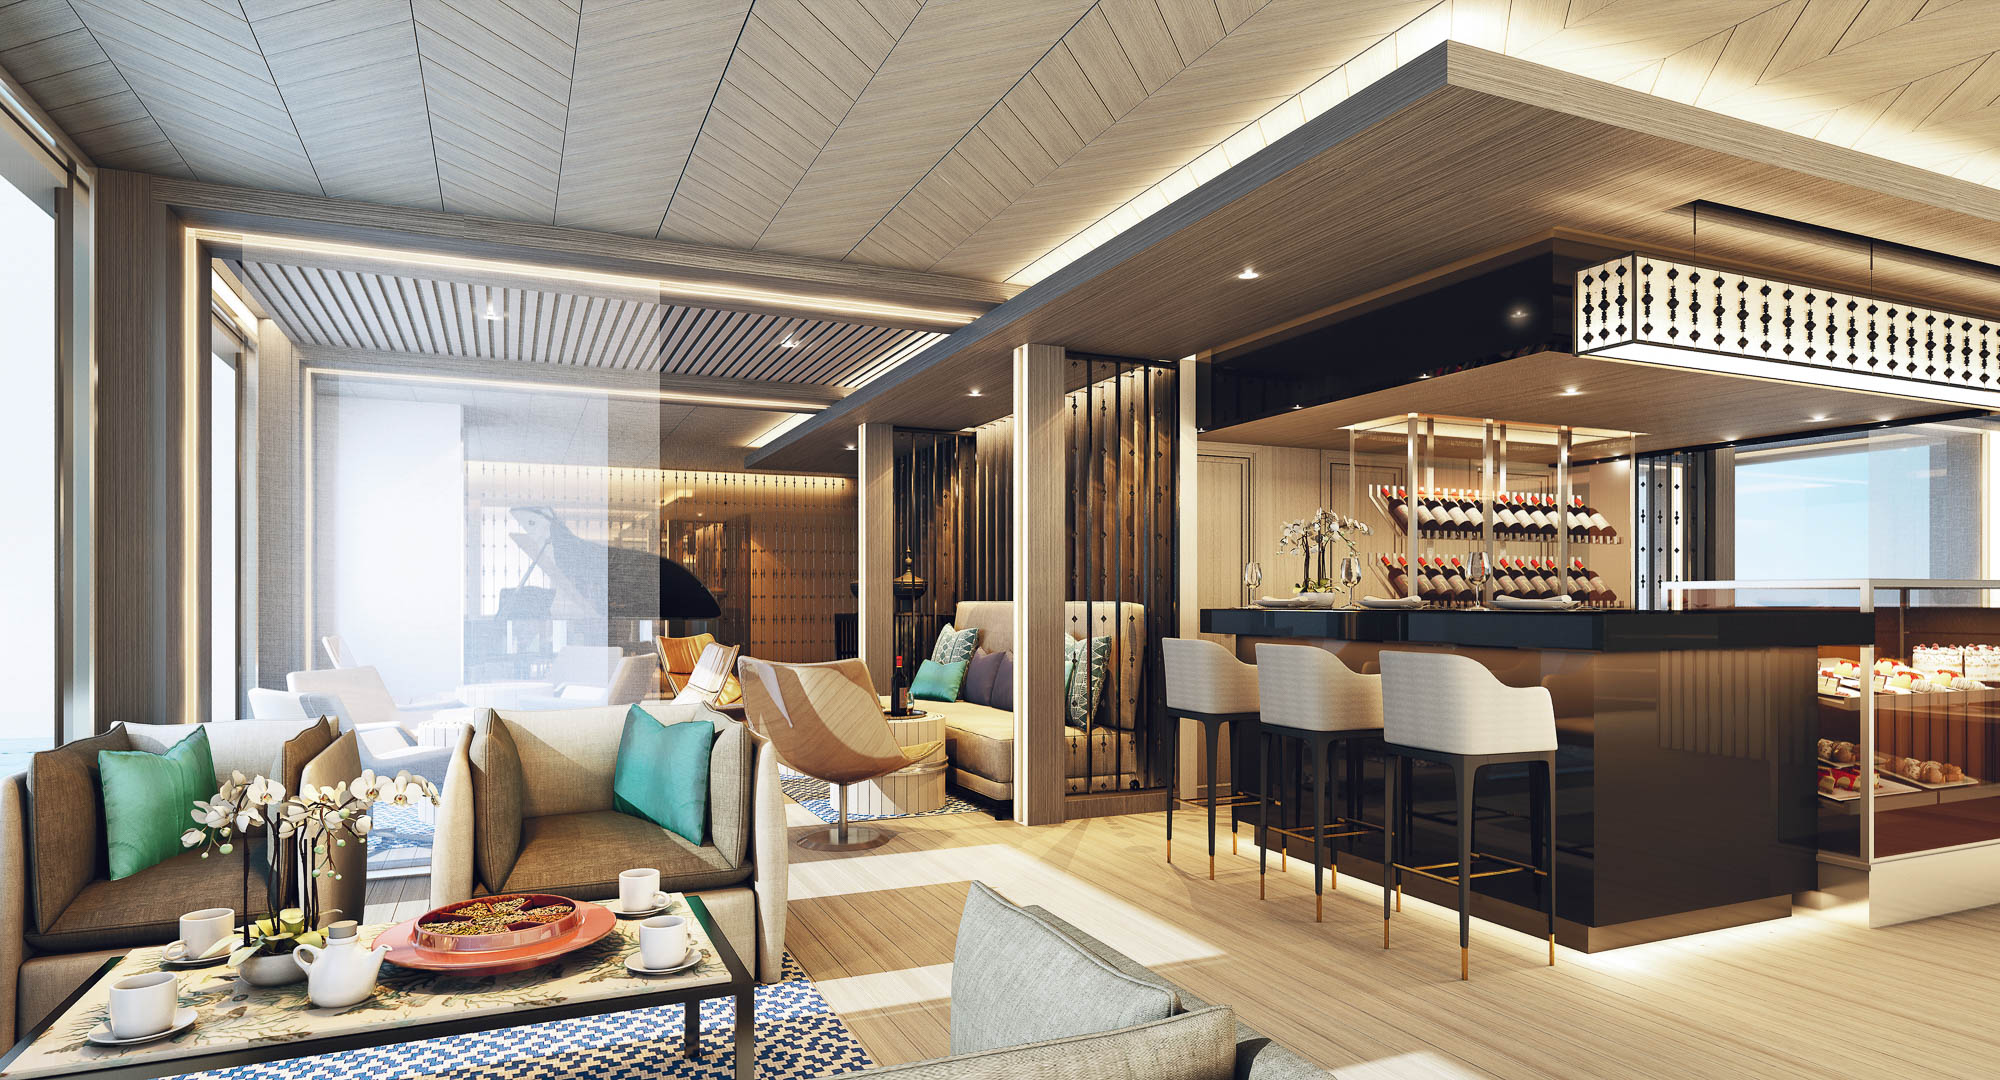 Scenic Aura is one of the most stylish river cruise ships on the Irrawaddy. Rendering courtesy Scenic